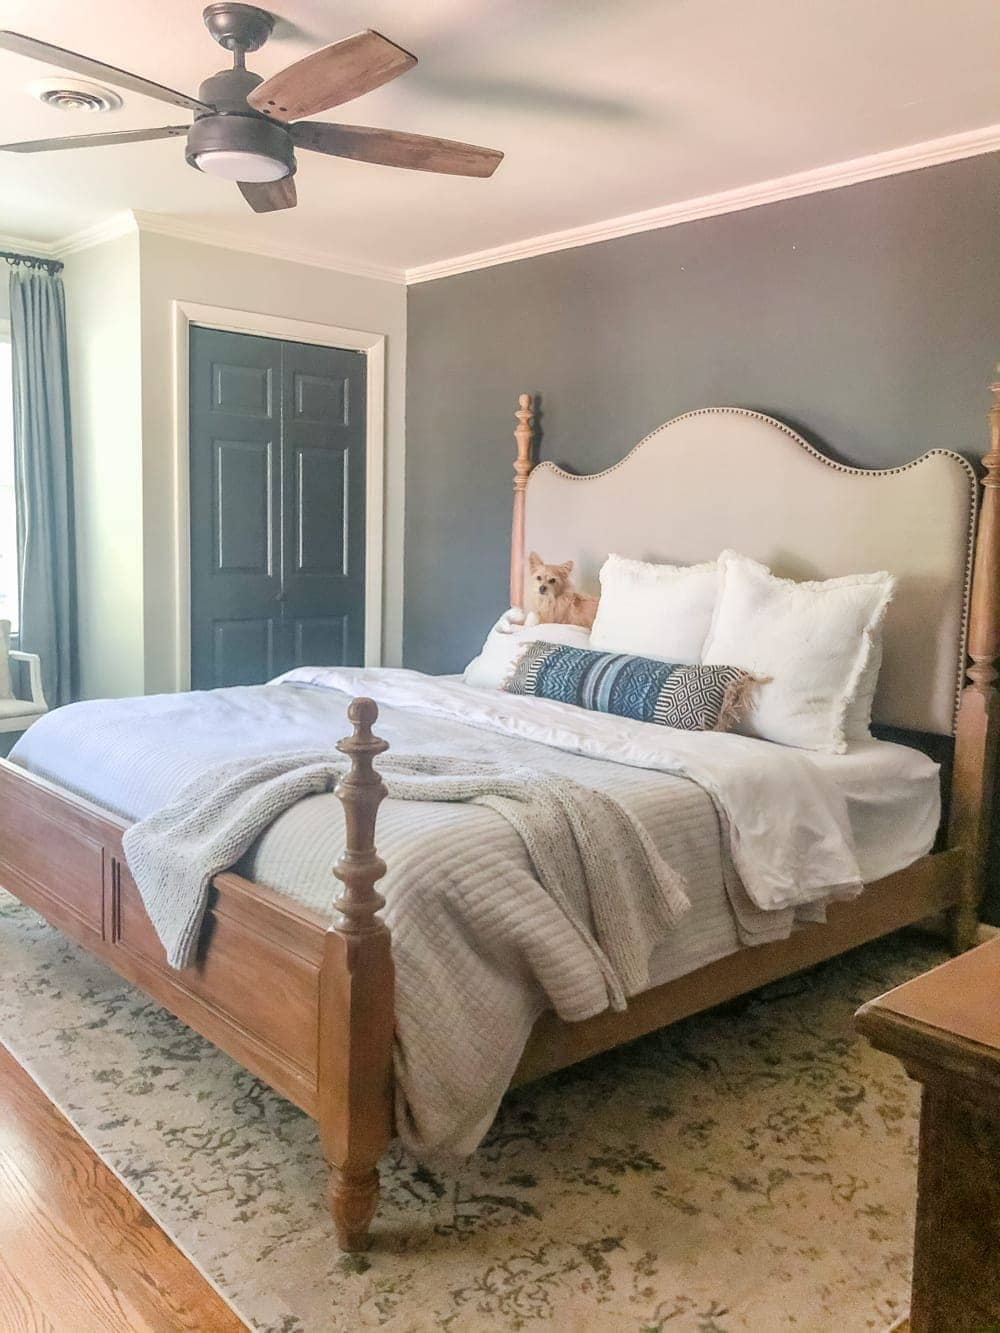 """A full """"before"""" tour and moody master bedroom refresh plans to reclaim our space after the baby co-sleeping phase   ideas for pulling off high-end for less."""